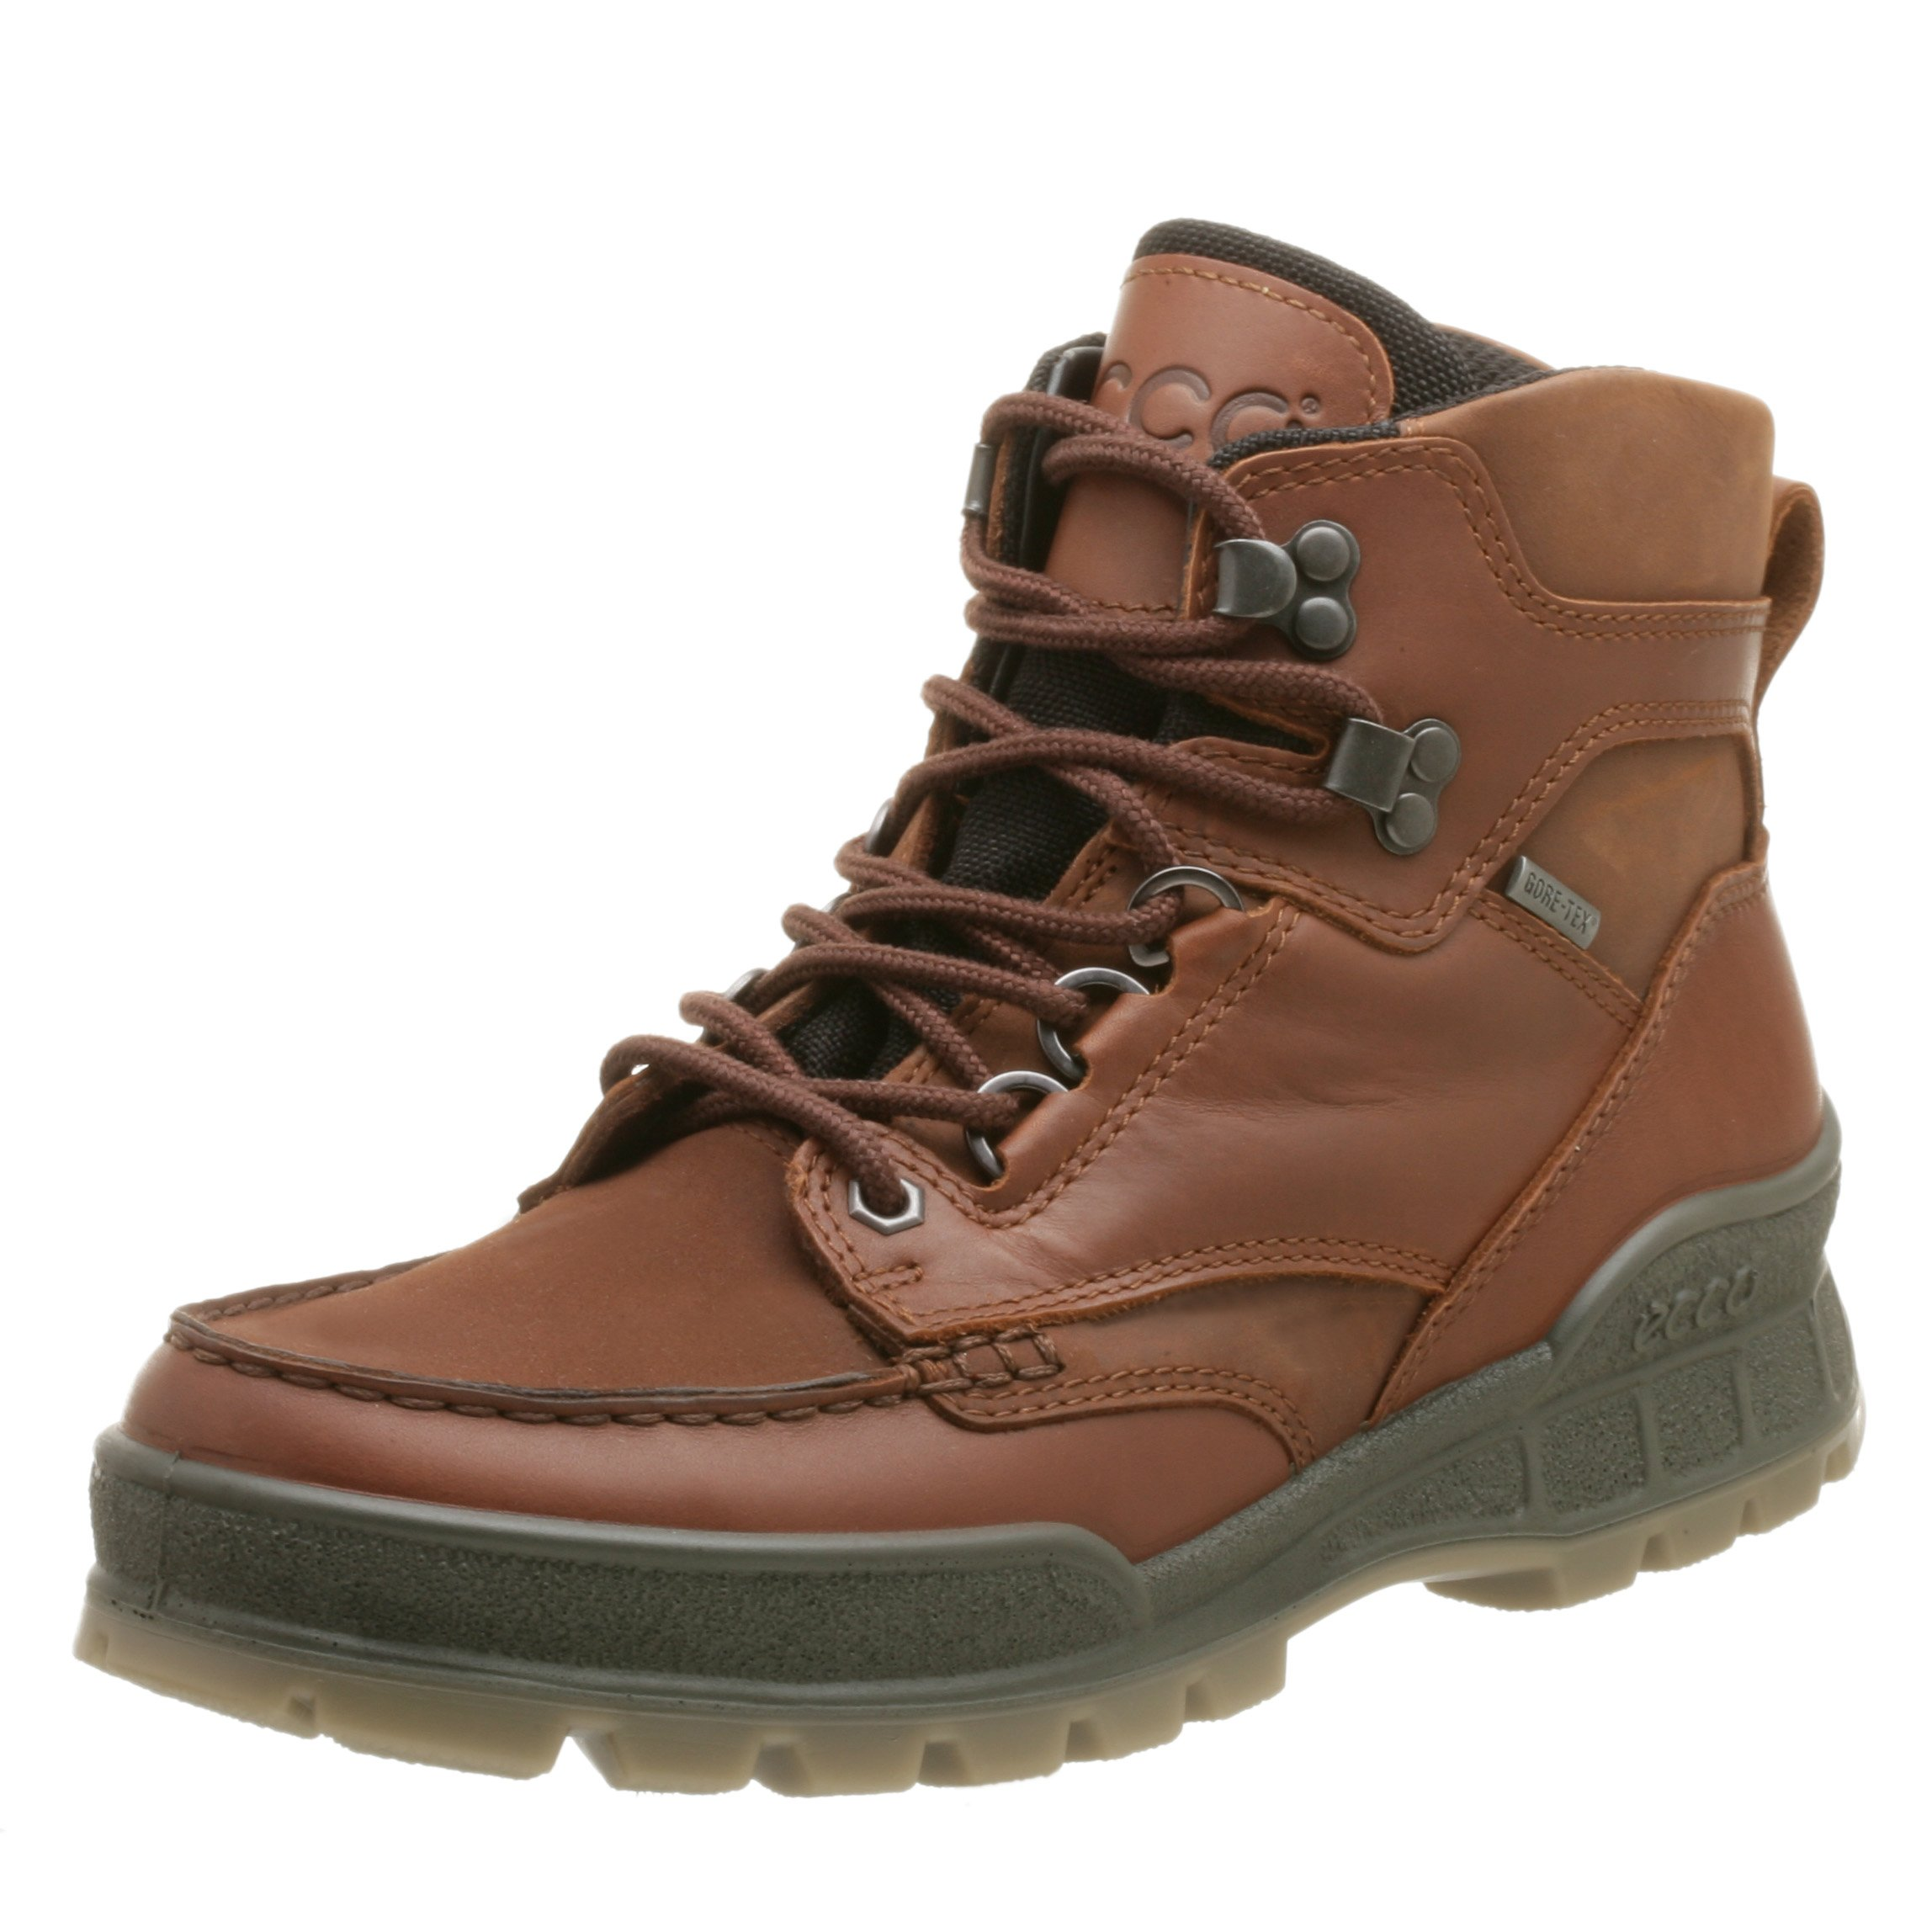 ECCO Men's Track II Mid Gore-Tex Boot,Bison,45 EU (US Men's 11-11.5 M)